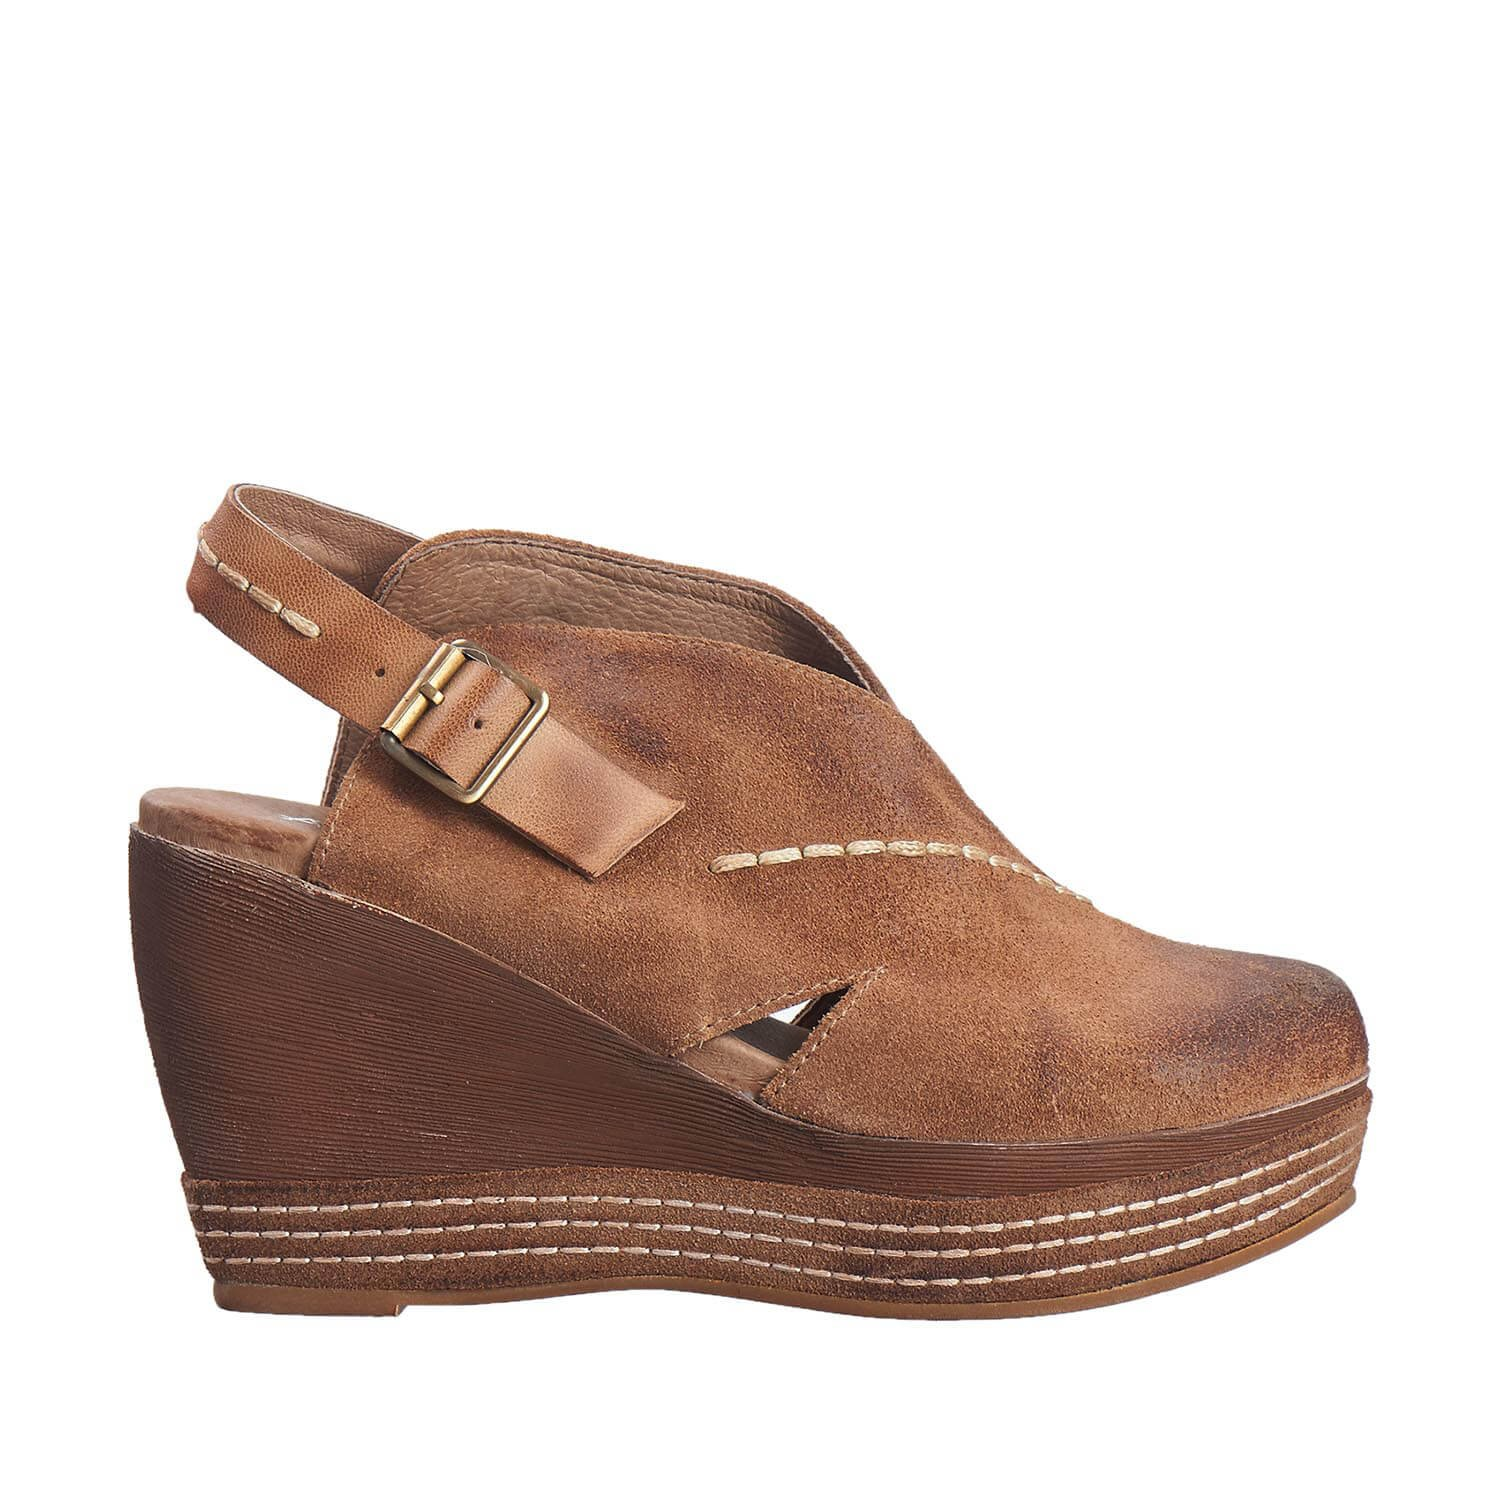 Antelope Women's 836 Taupe Suede Cutout Sling Wedge 38 by Antelope (Image #2)